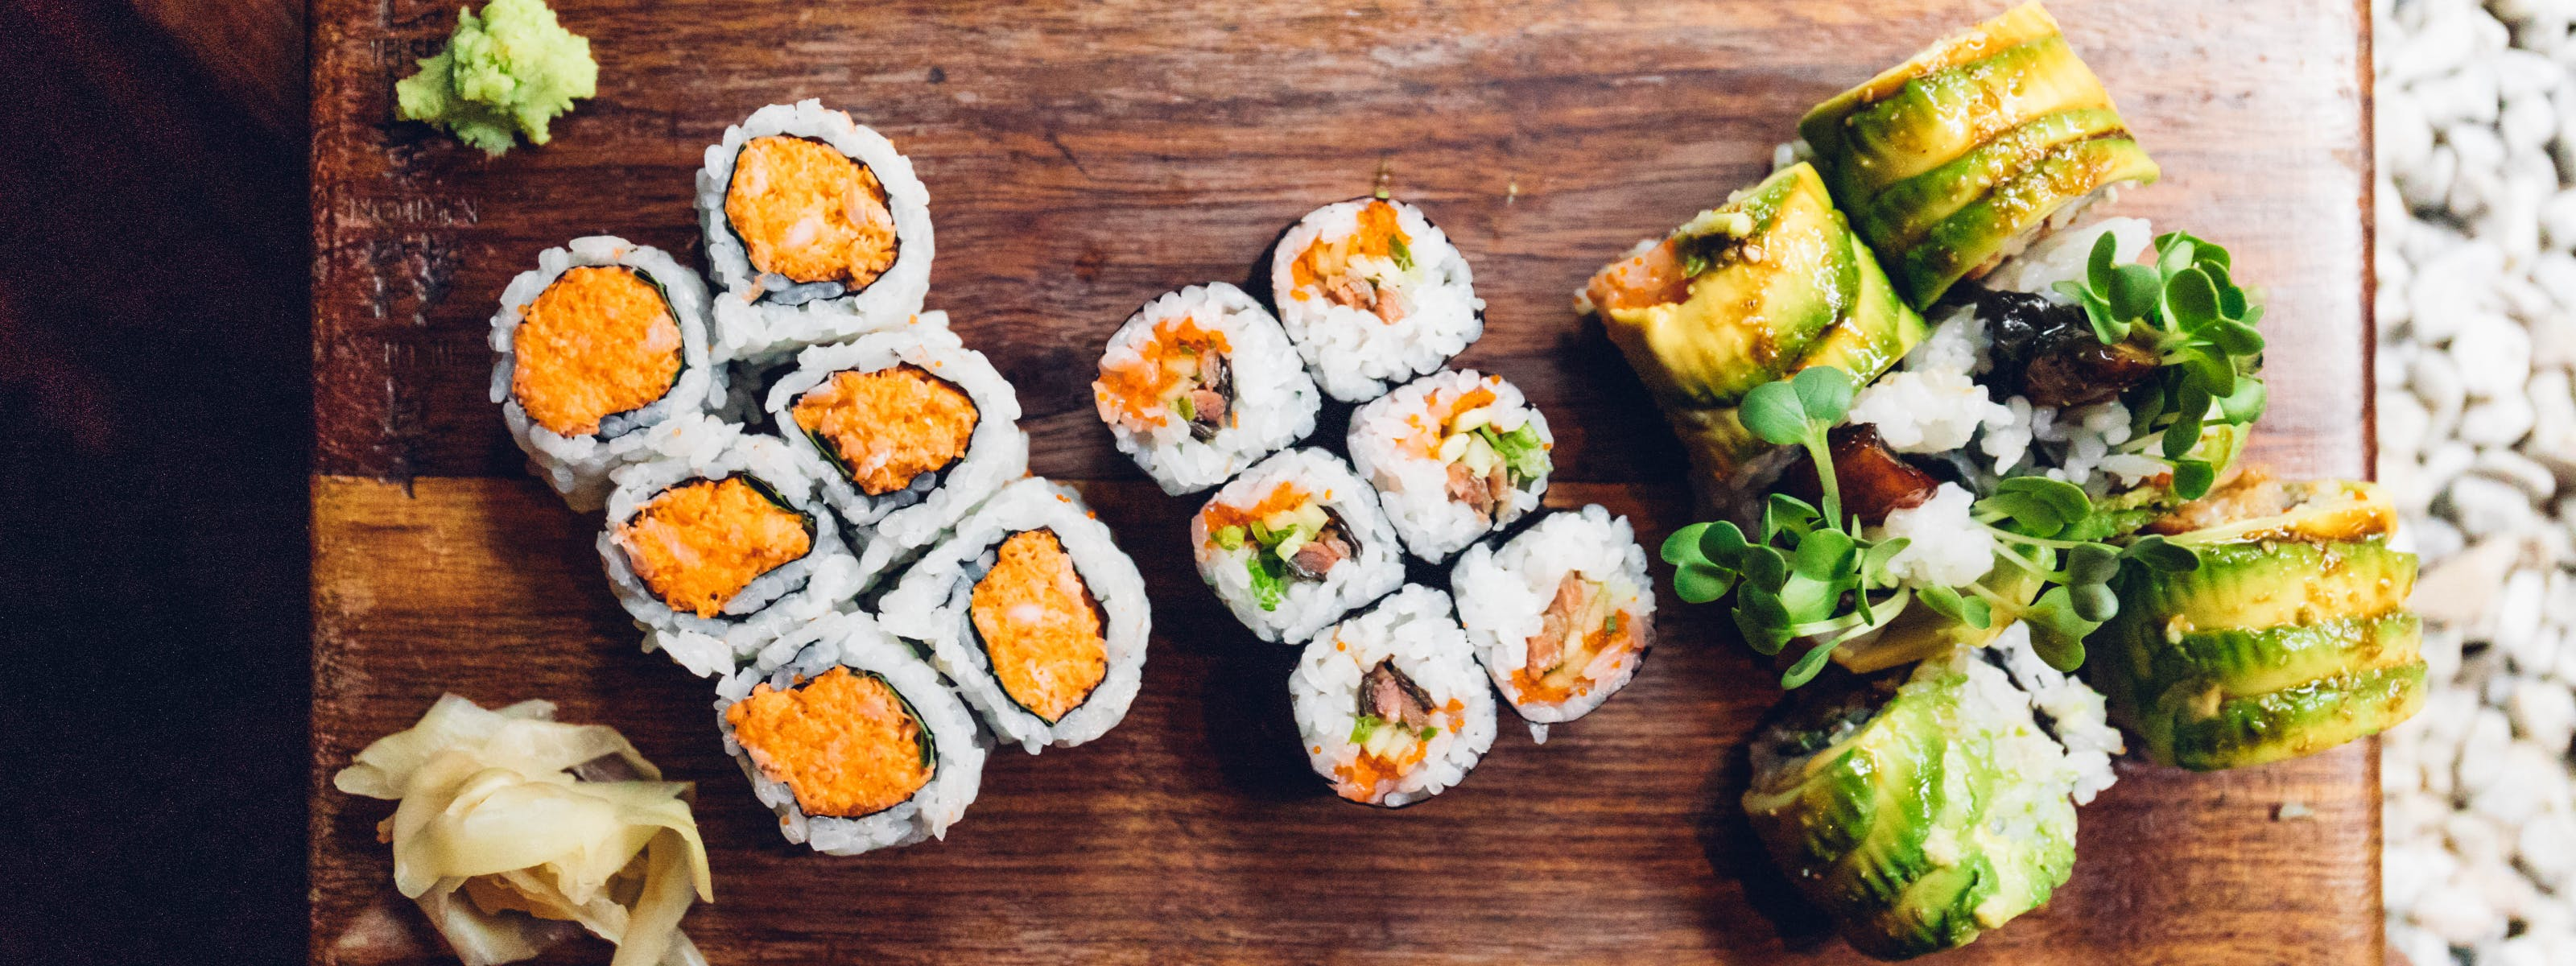 The Best Places To Eat Sushi Outside In NYC - New York - The Infatuation